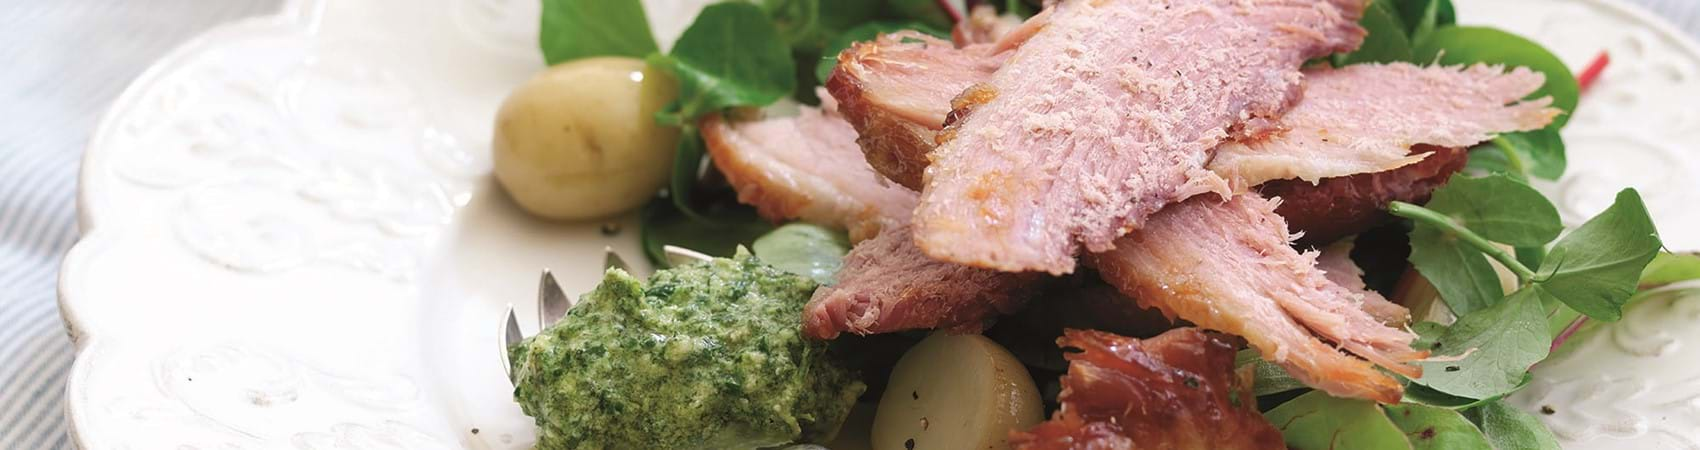 Baked Ham Salad With Fresh Herb Pesto Dressing